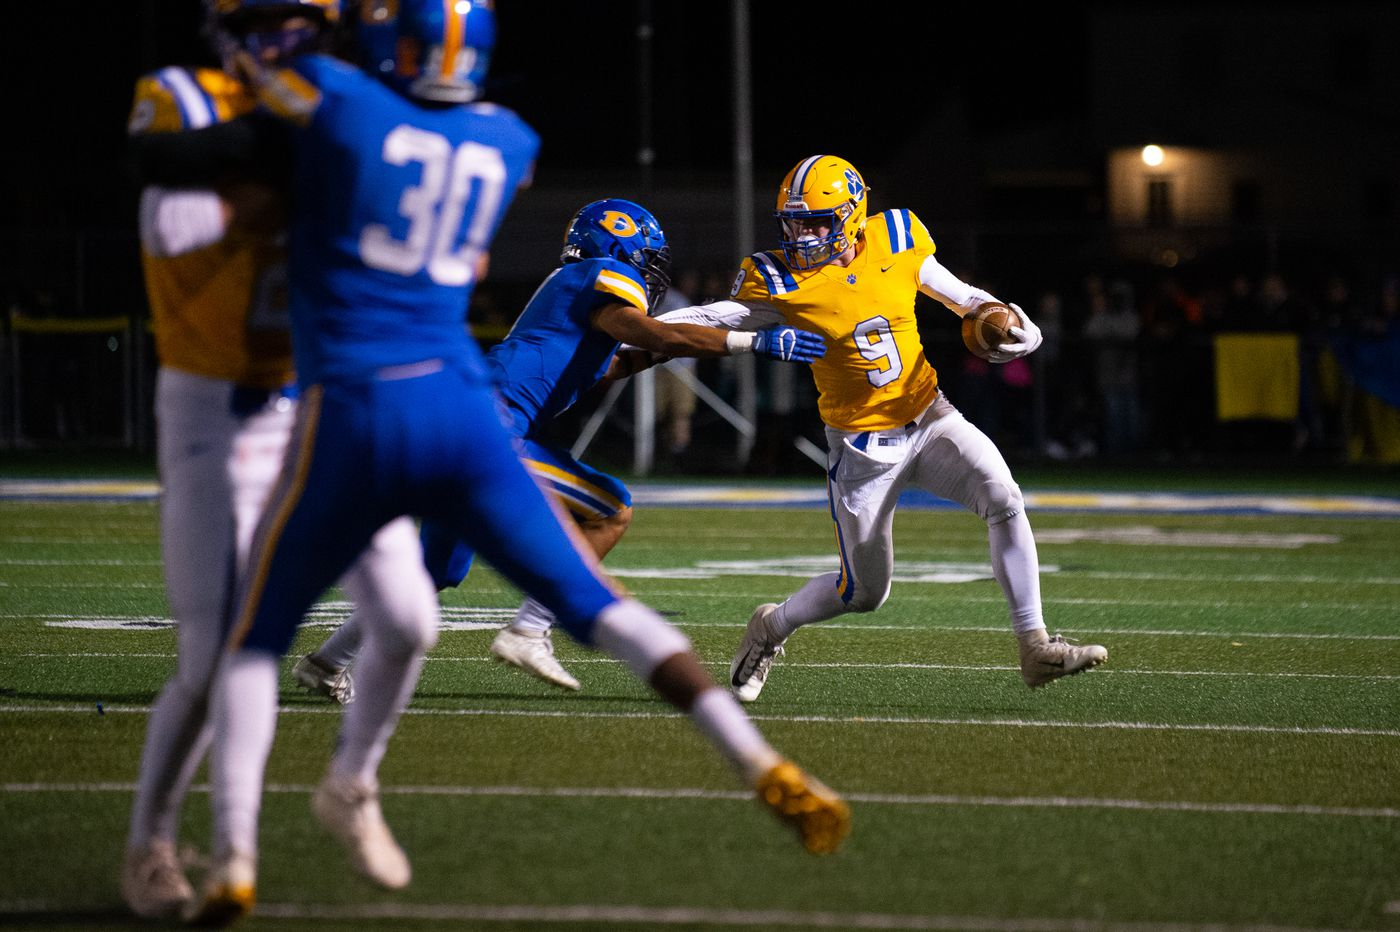 Southeastern Pennsylvania Football Rankings: Downingtown East climbs to No. 3 in Top 10